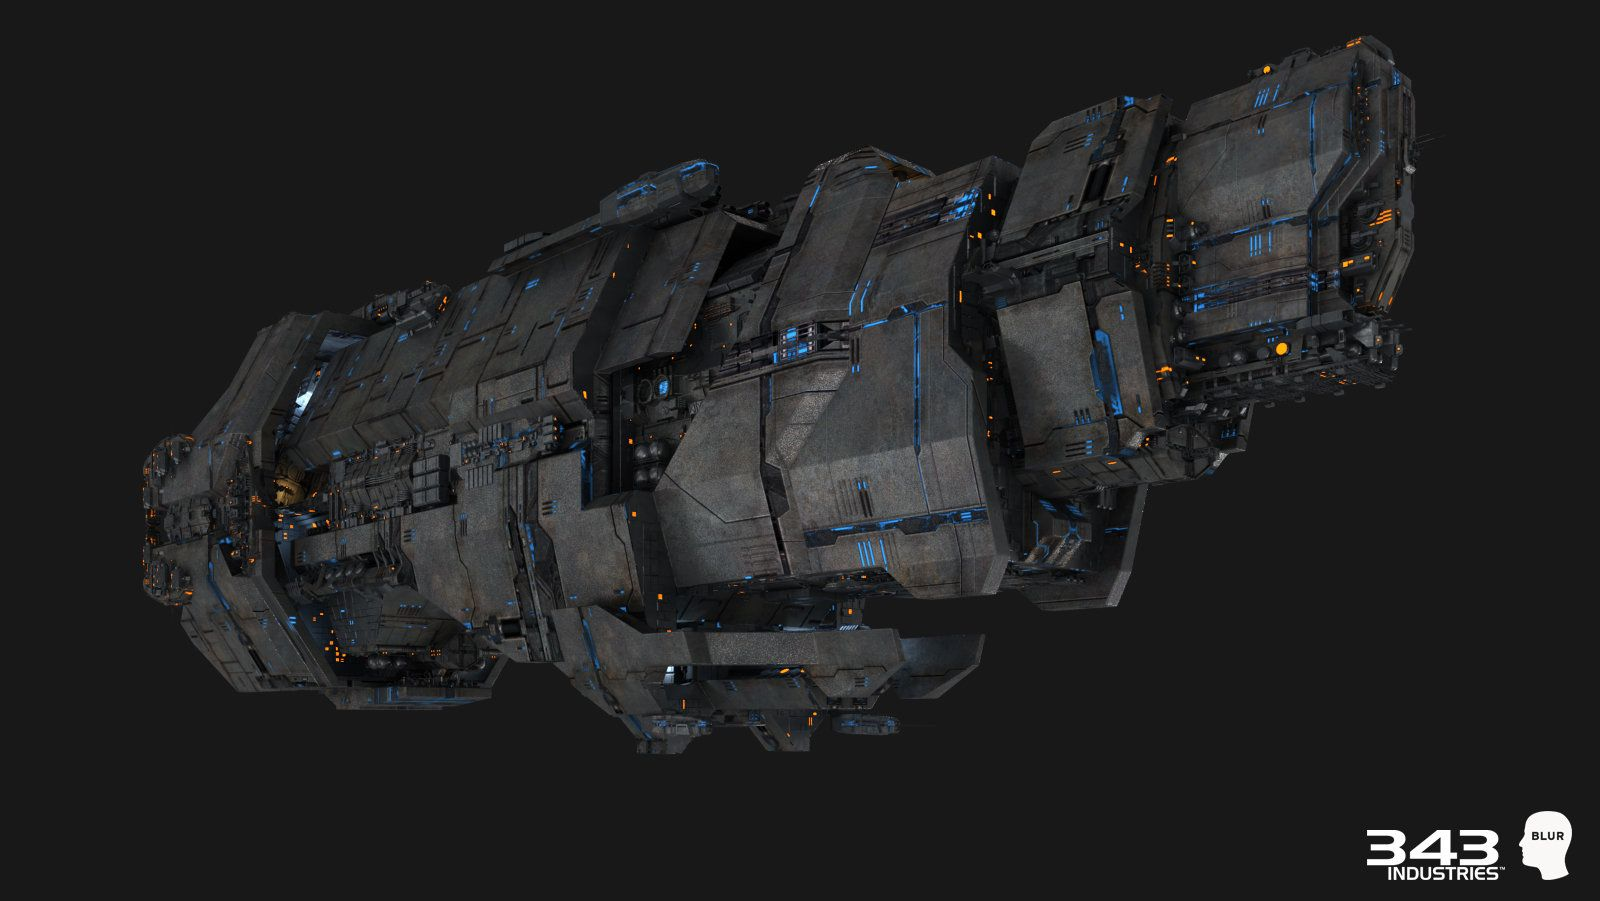 ArtStation - Halo 2 Anniversary: Spaceships, Andrew Averkin